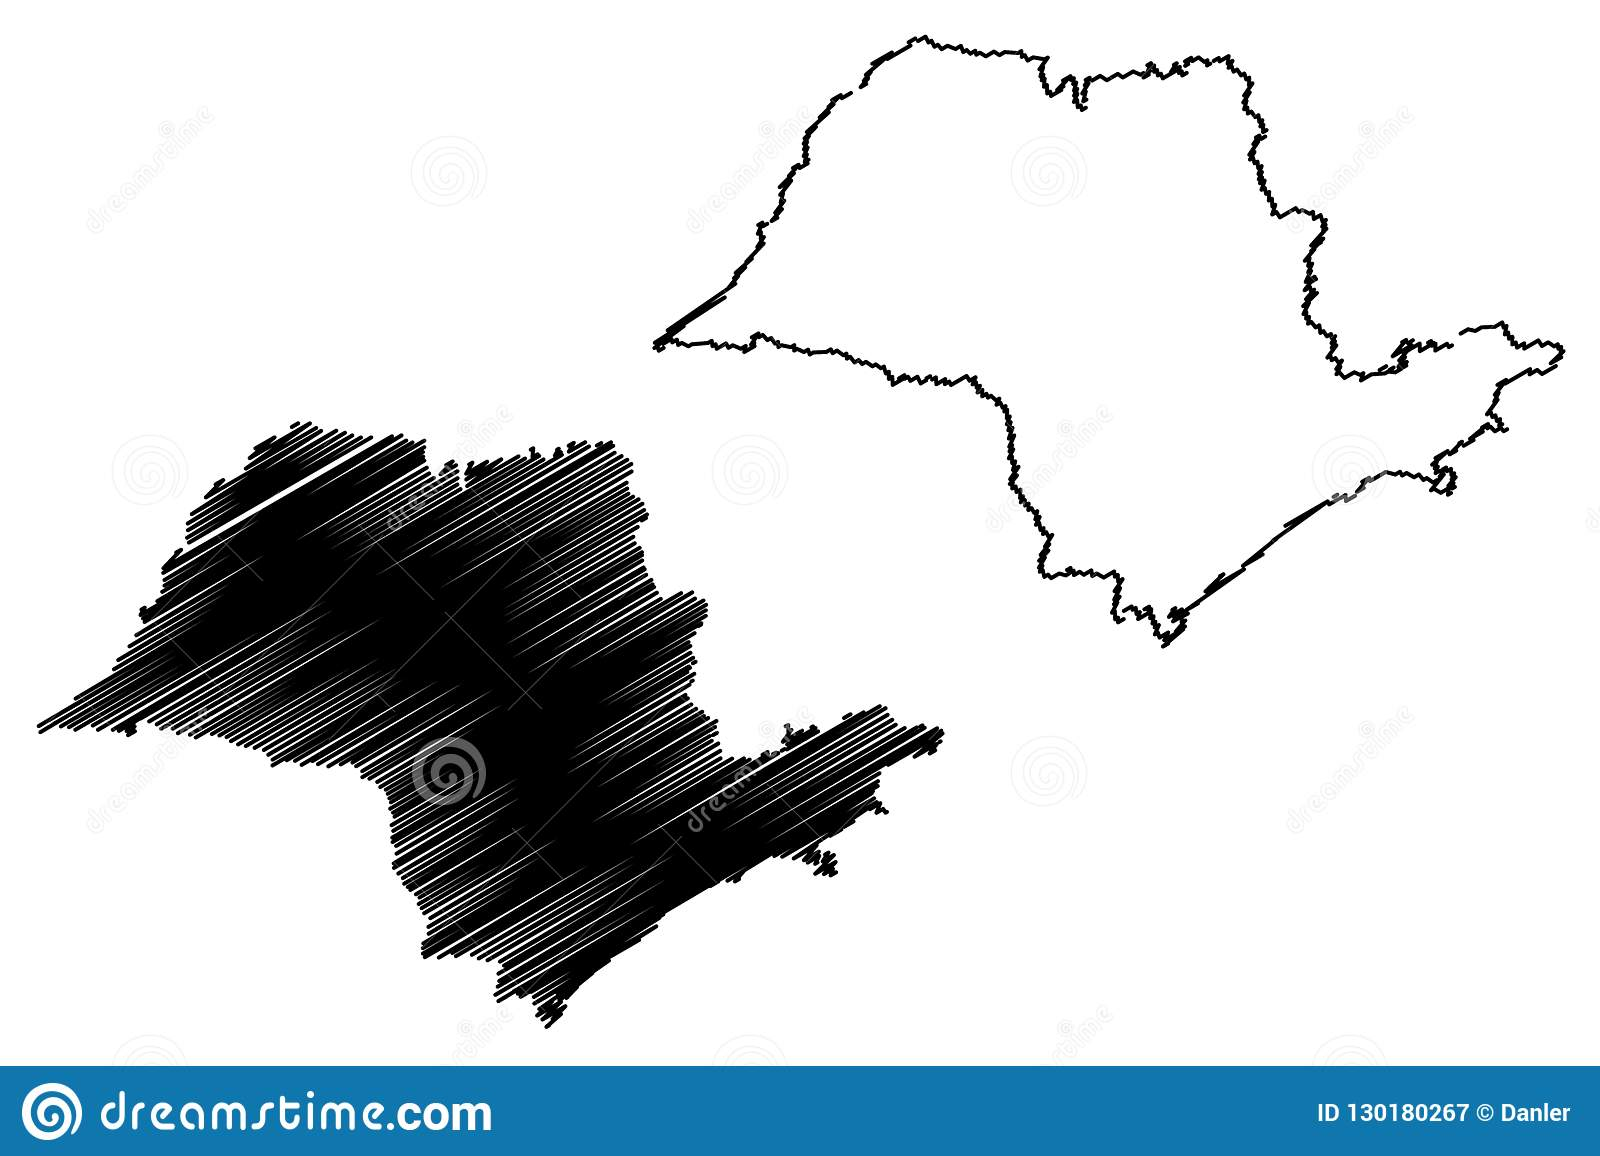 Sao Paulo State Map.Sao Paulo State Map Vector Stock Vector Illustration Of Geography